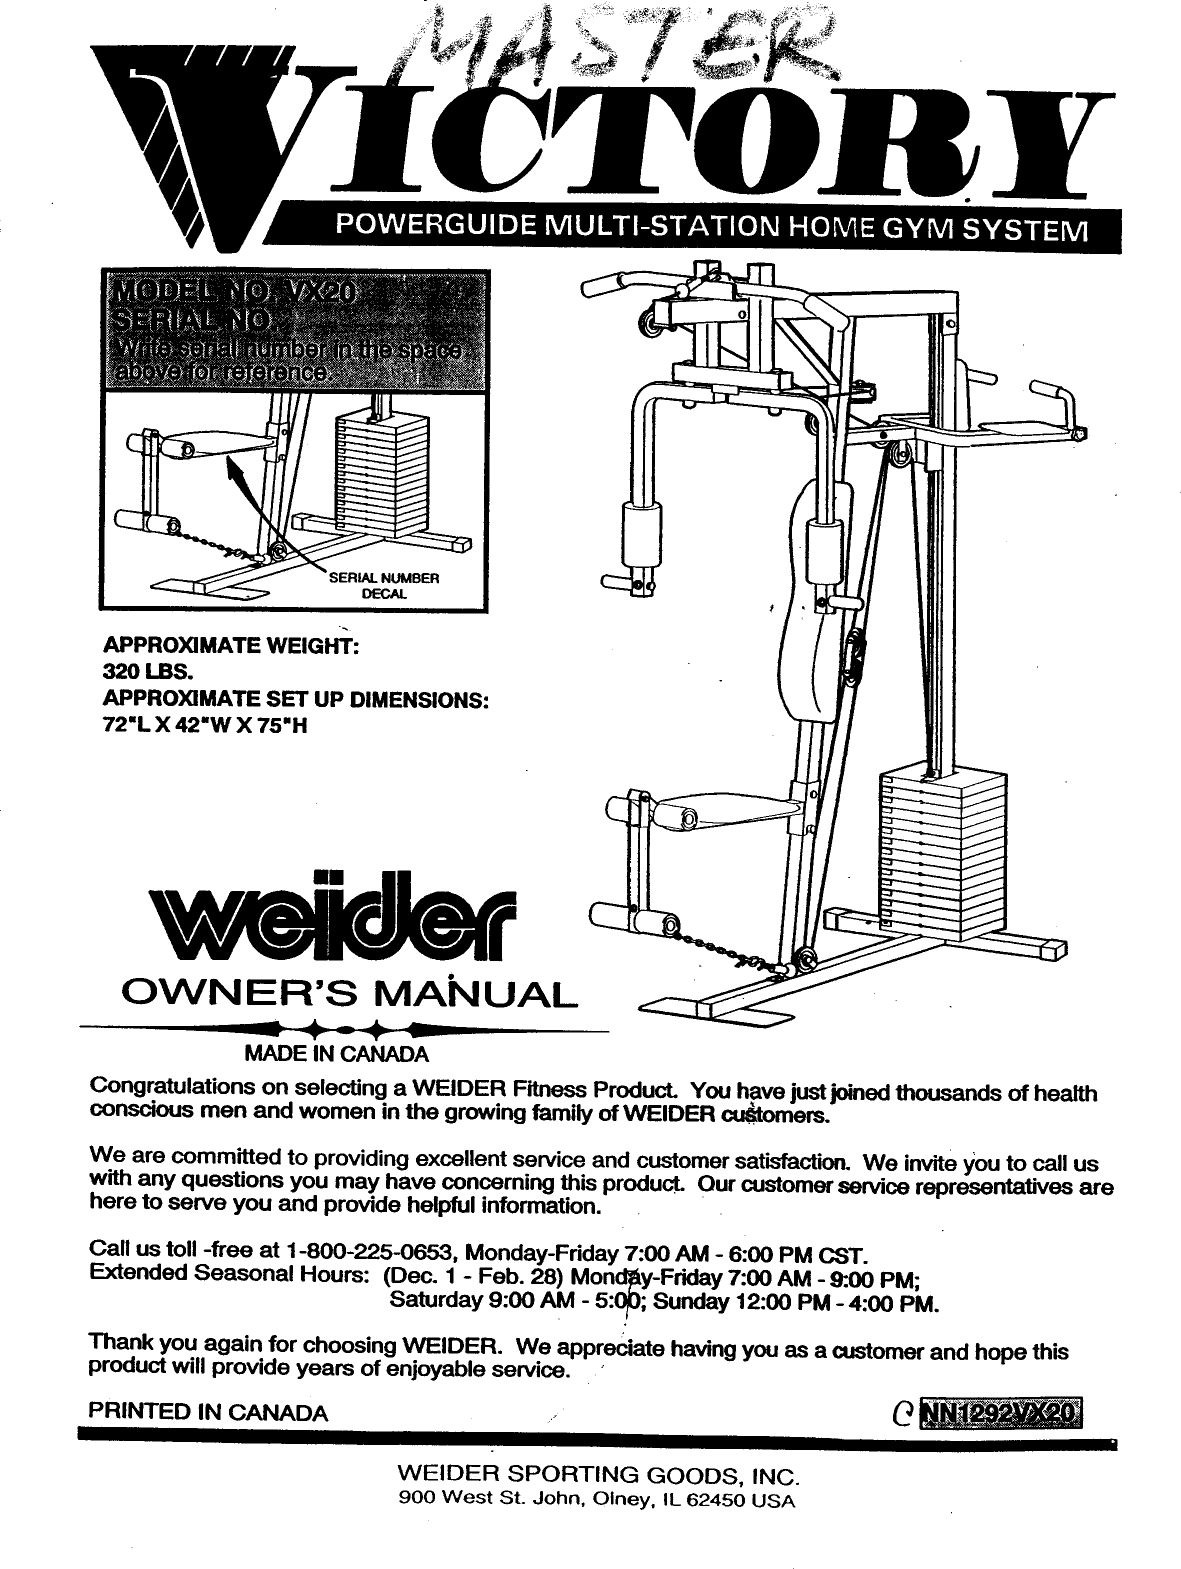 Weider Victory Powerguide System Vx20 Users Manual